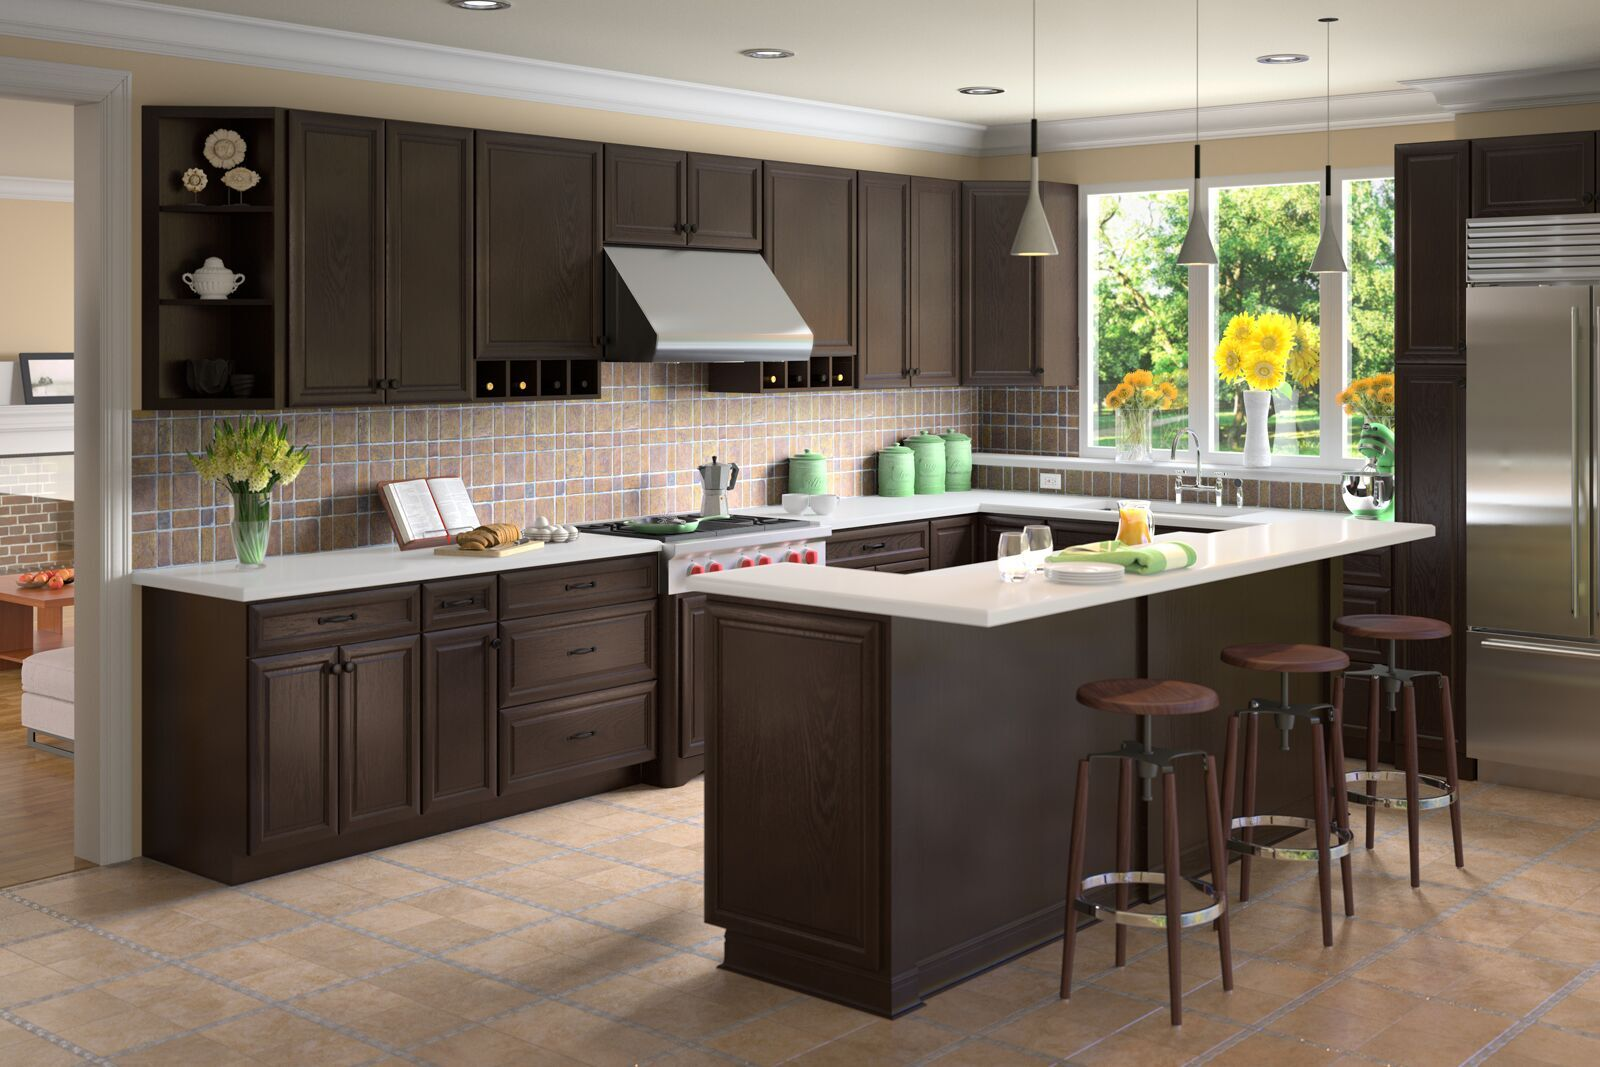 5 day kitchen cabinets all wood kitchen cabinets orlando orlando cabinets 5 10301